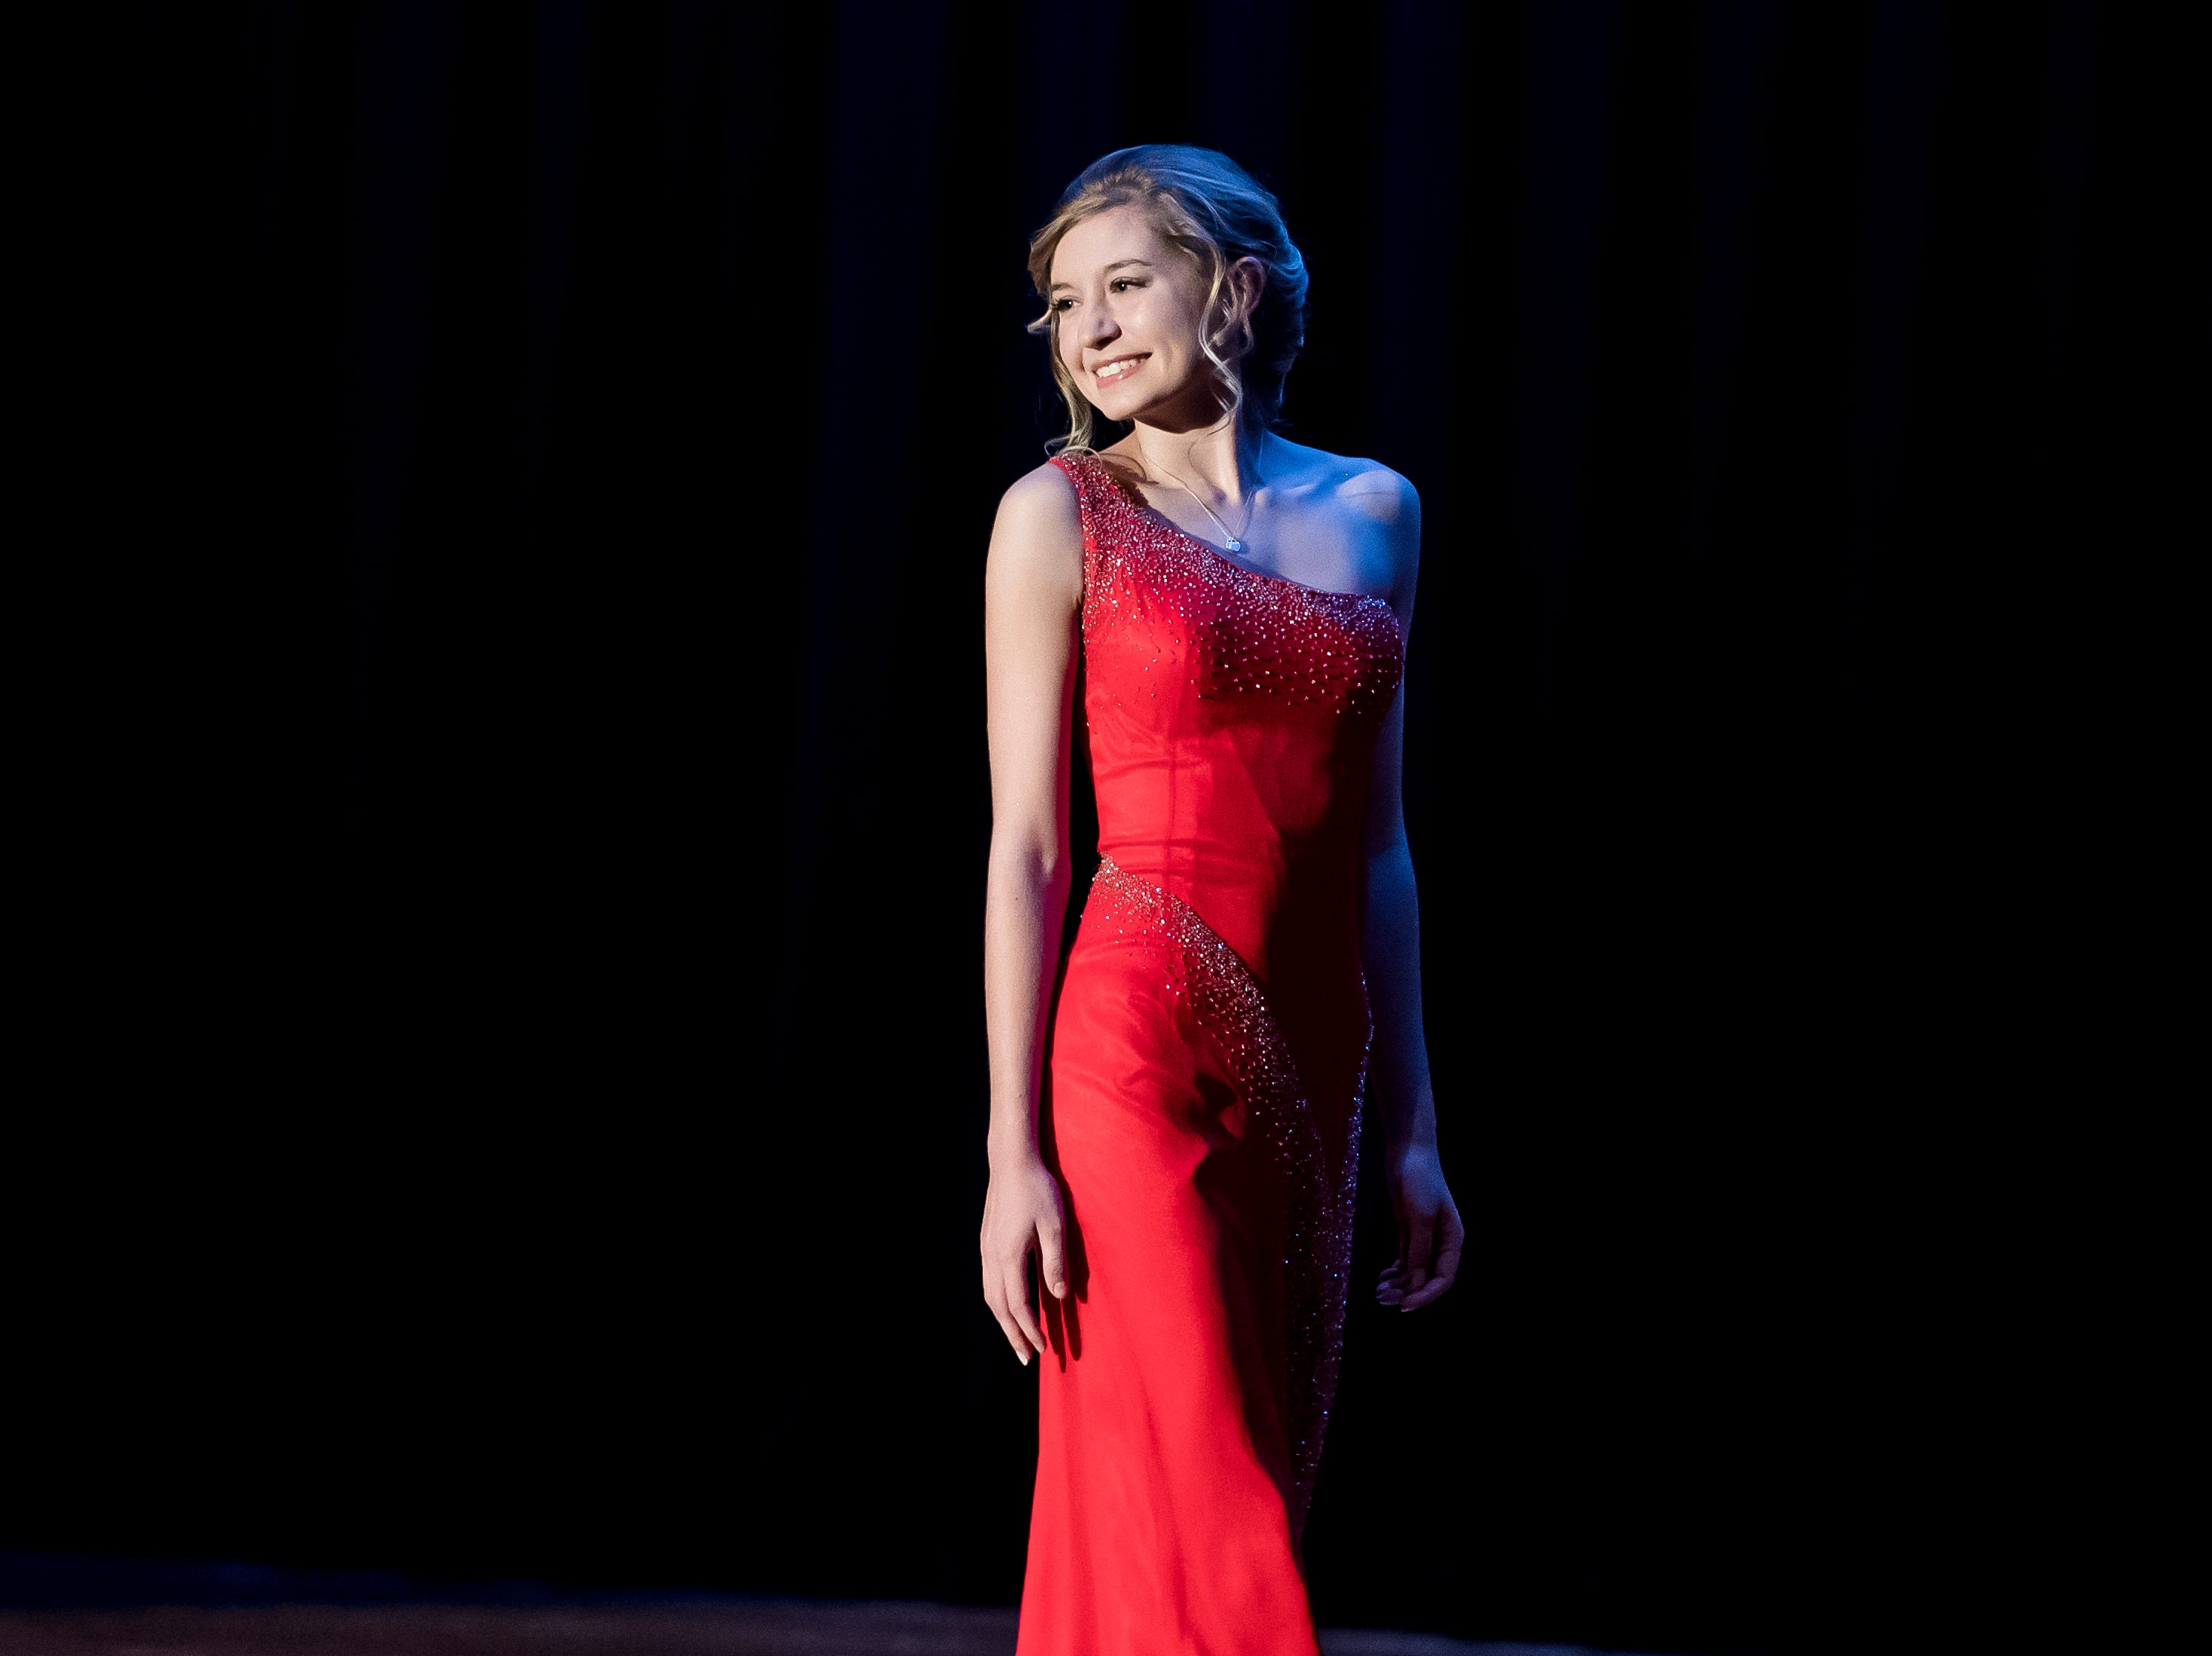 Grace Dickmyer walks on stage during the evening gown competition in the 50th Miss Hanover Area pageant on Monday, October 22, 2018.